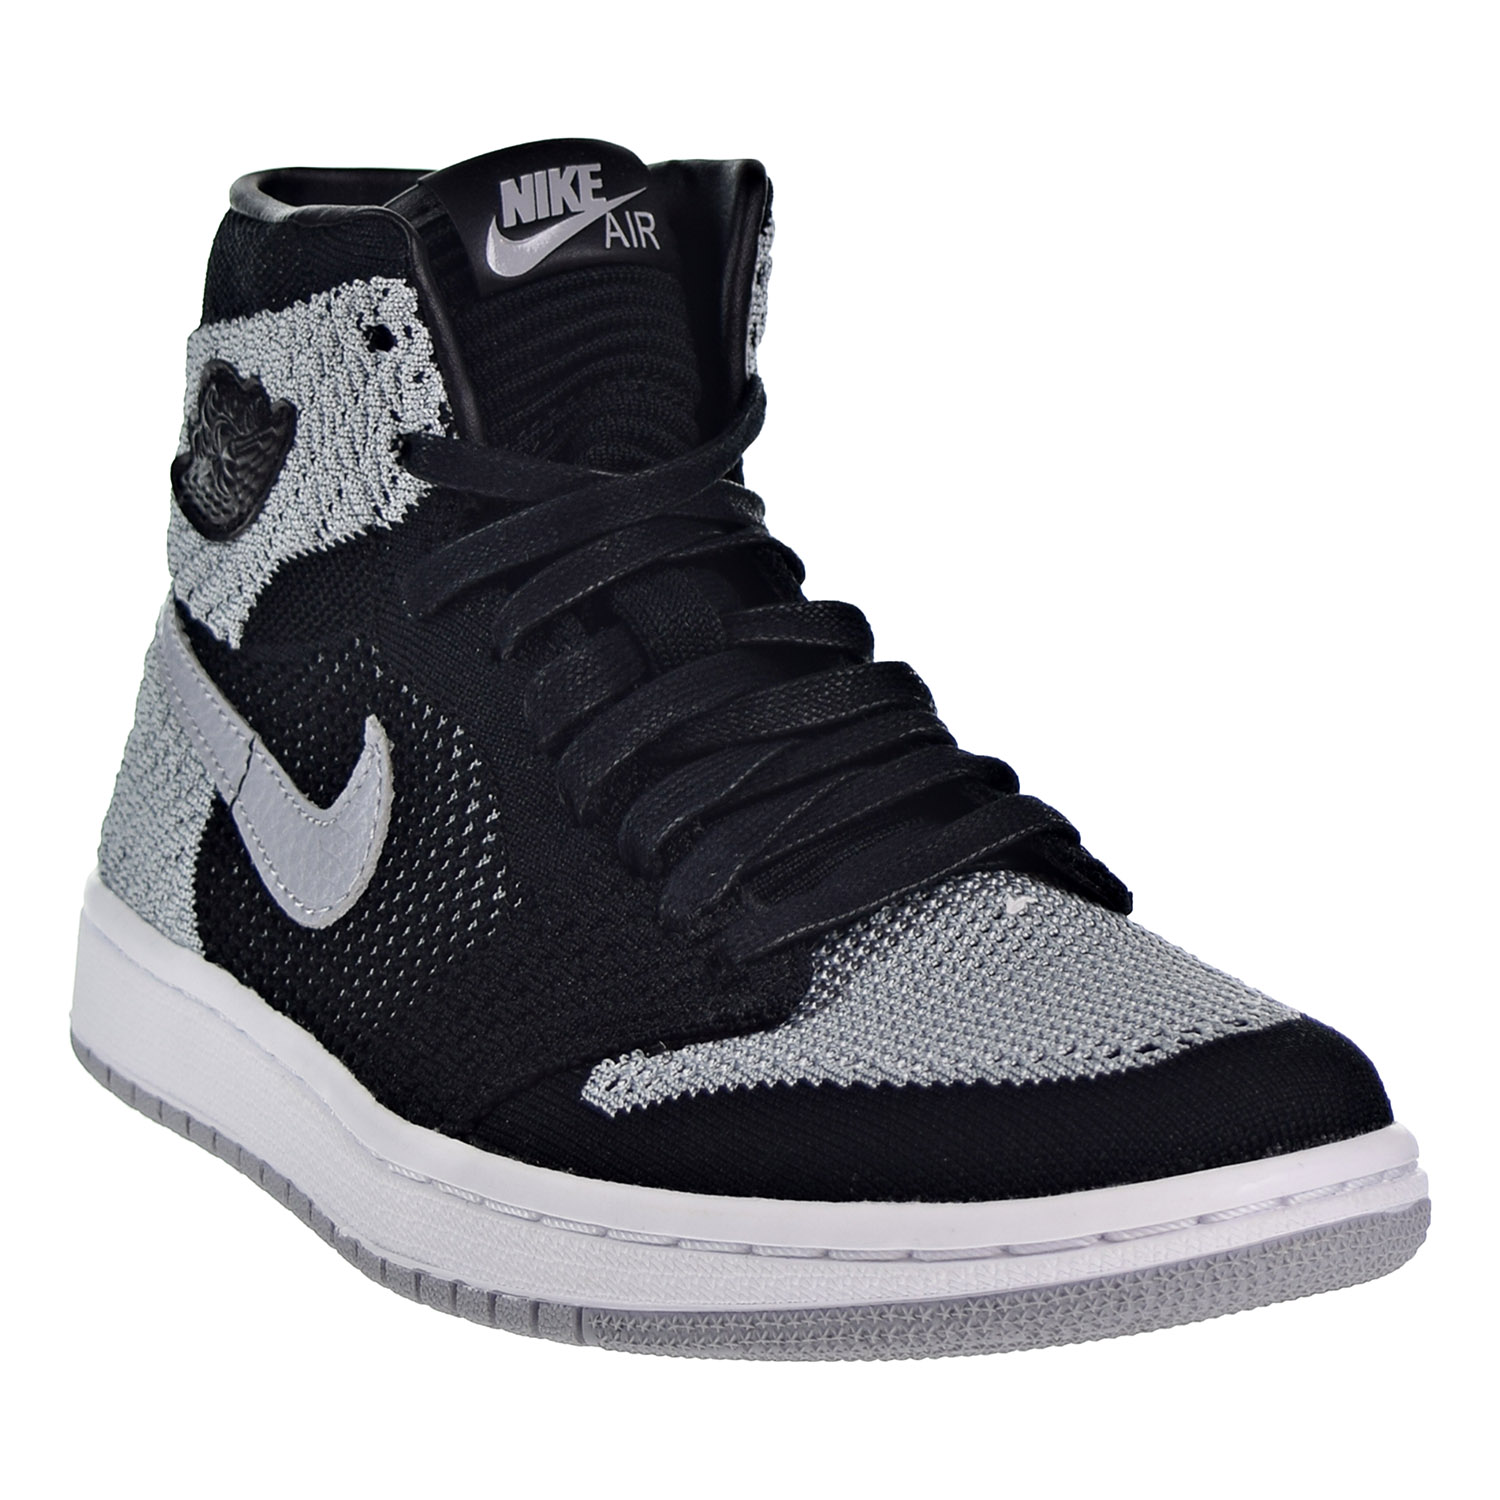 e216e20f825 Air Jordan 1 Retro High Flyknit Big Kid s Shoes Black Wolf Grey White  919702-003